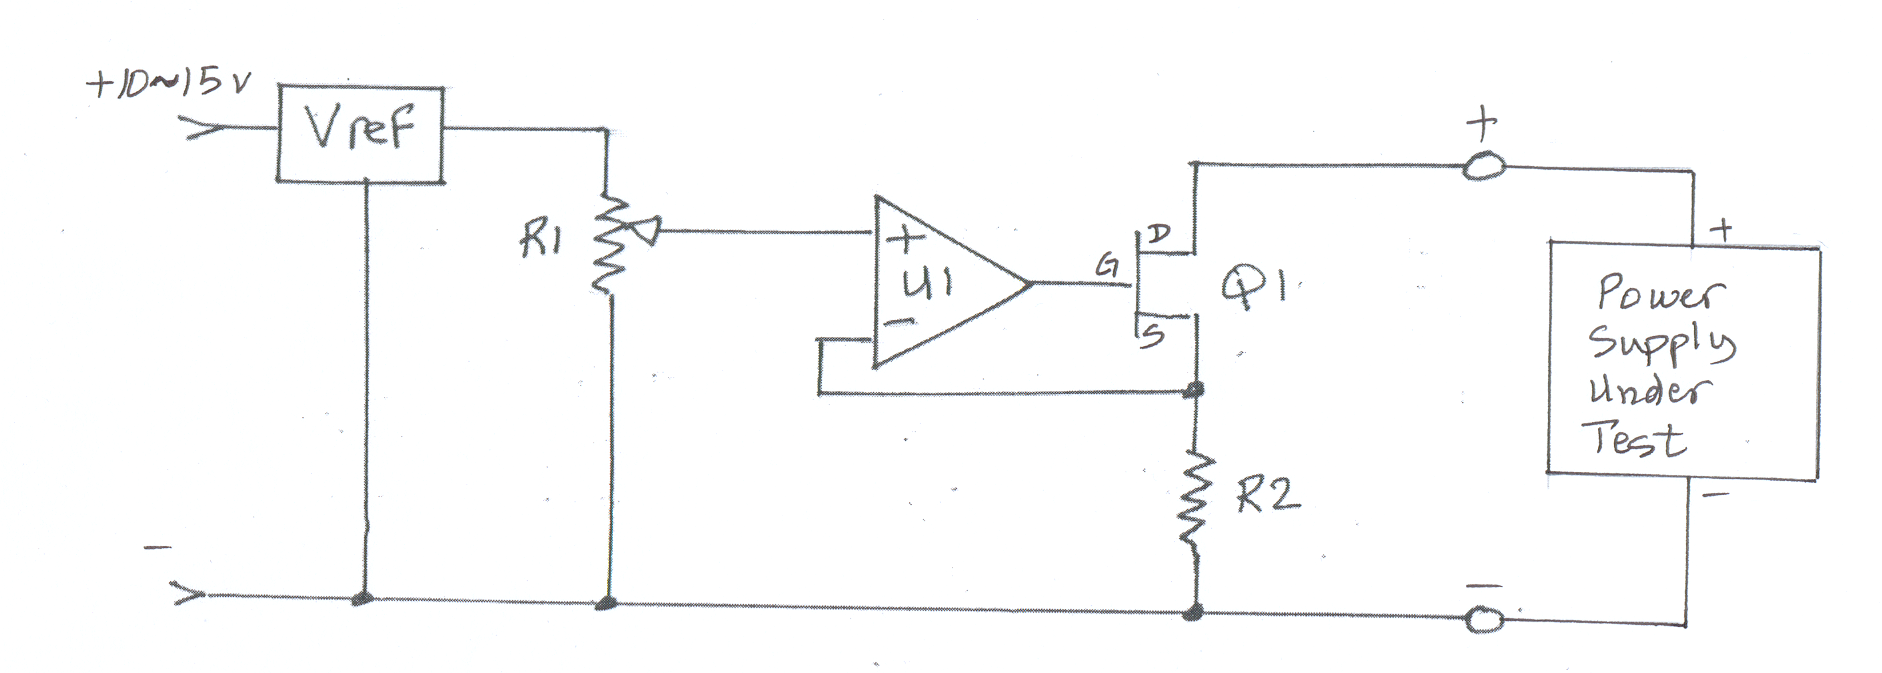 Dynamic Load Adjustable Regulated Dc Power Supply Circuit Diagram Constant Current Operation